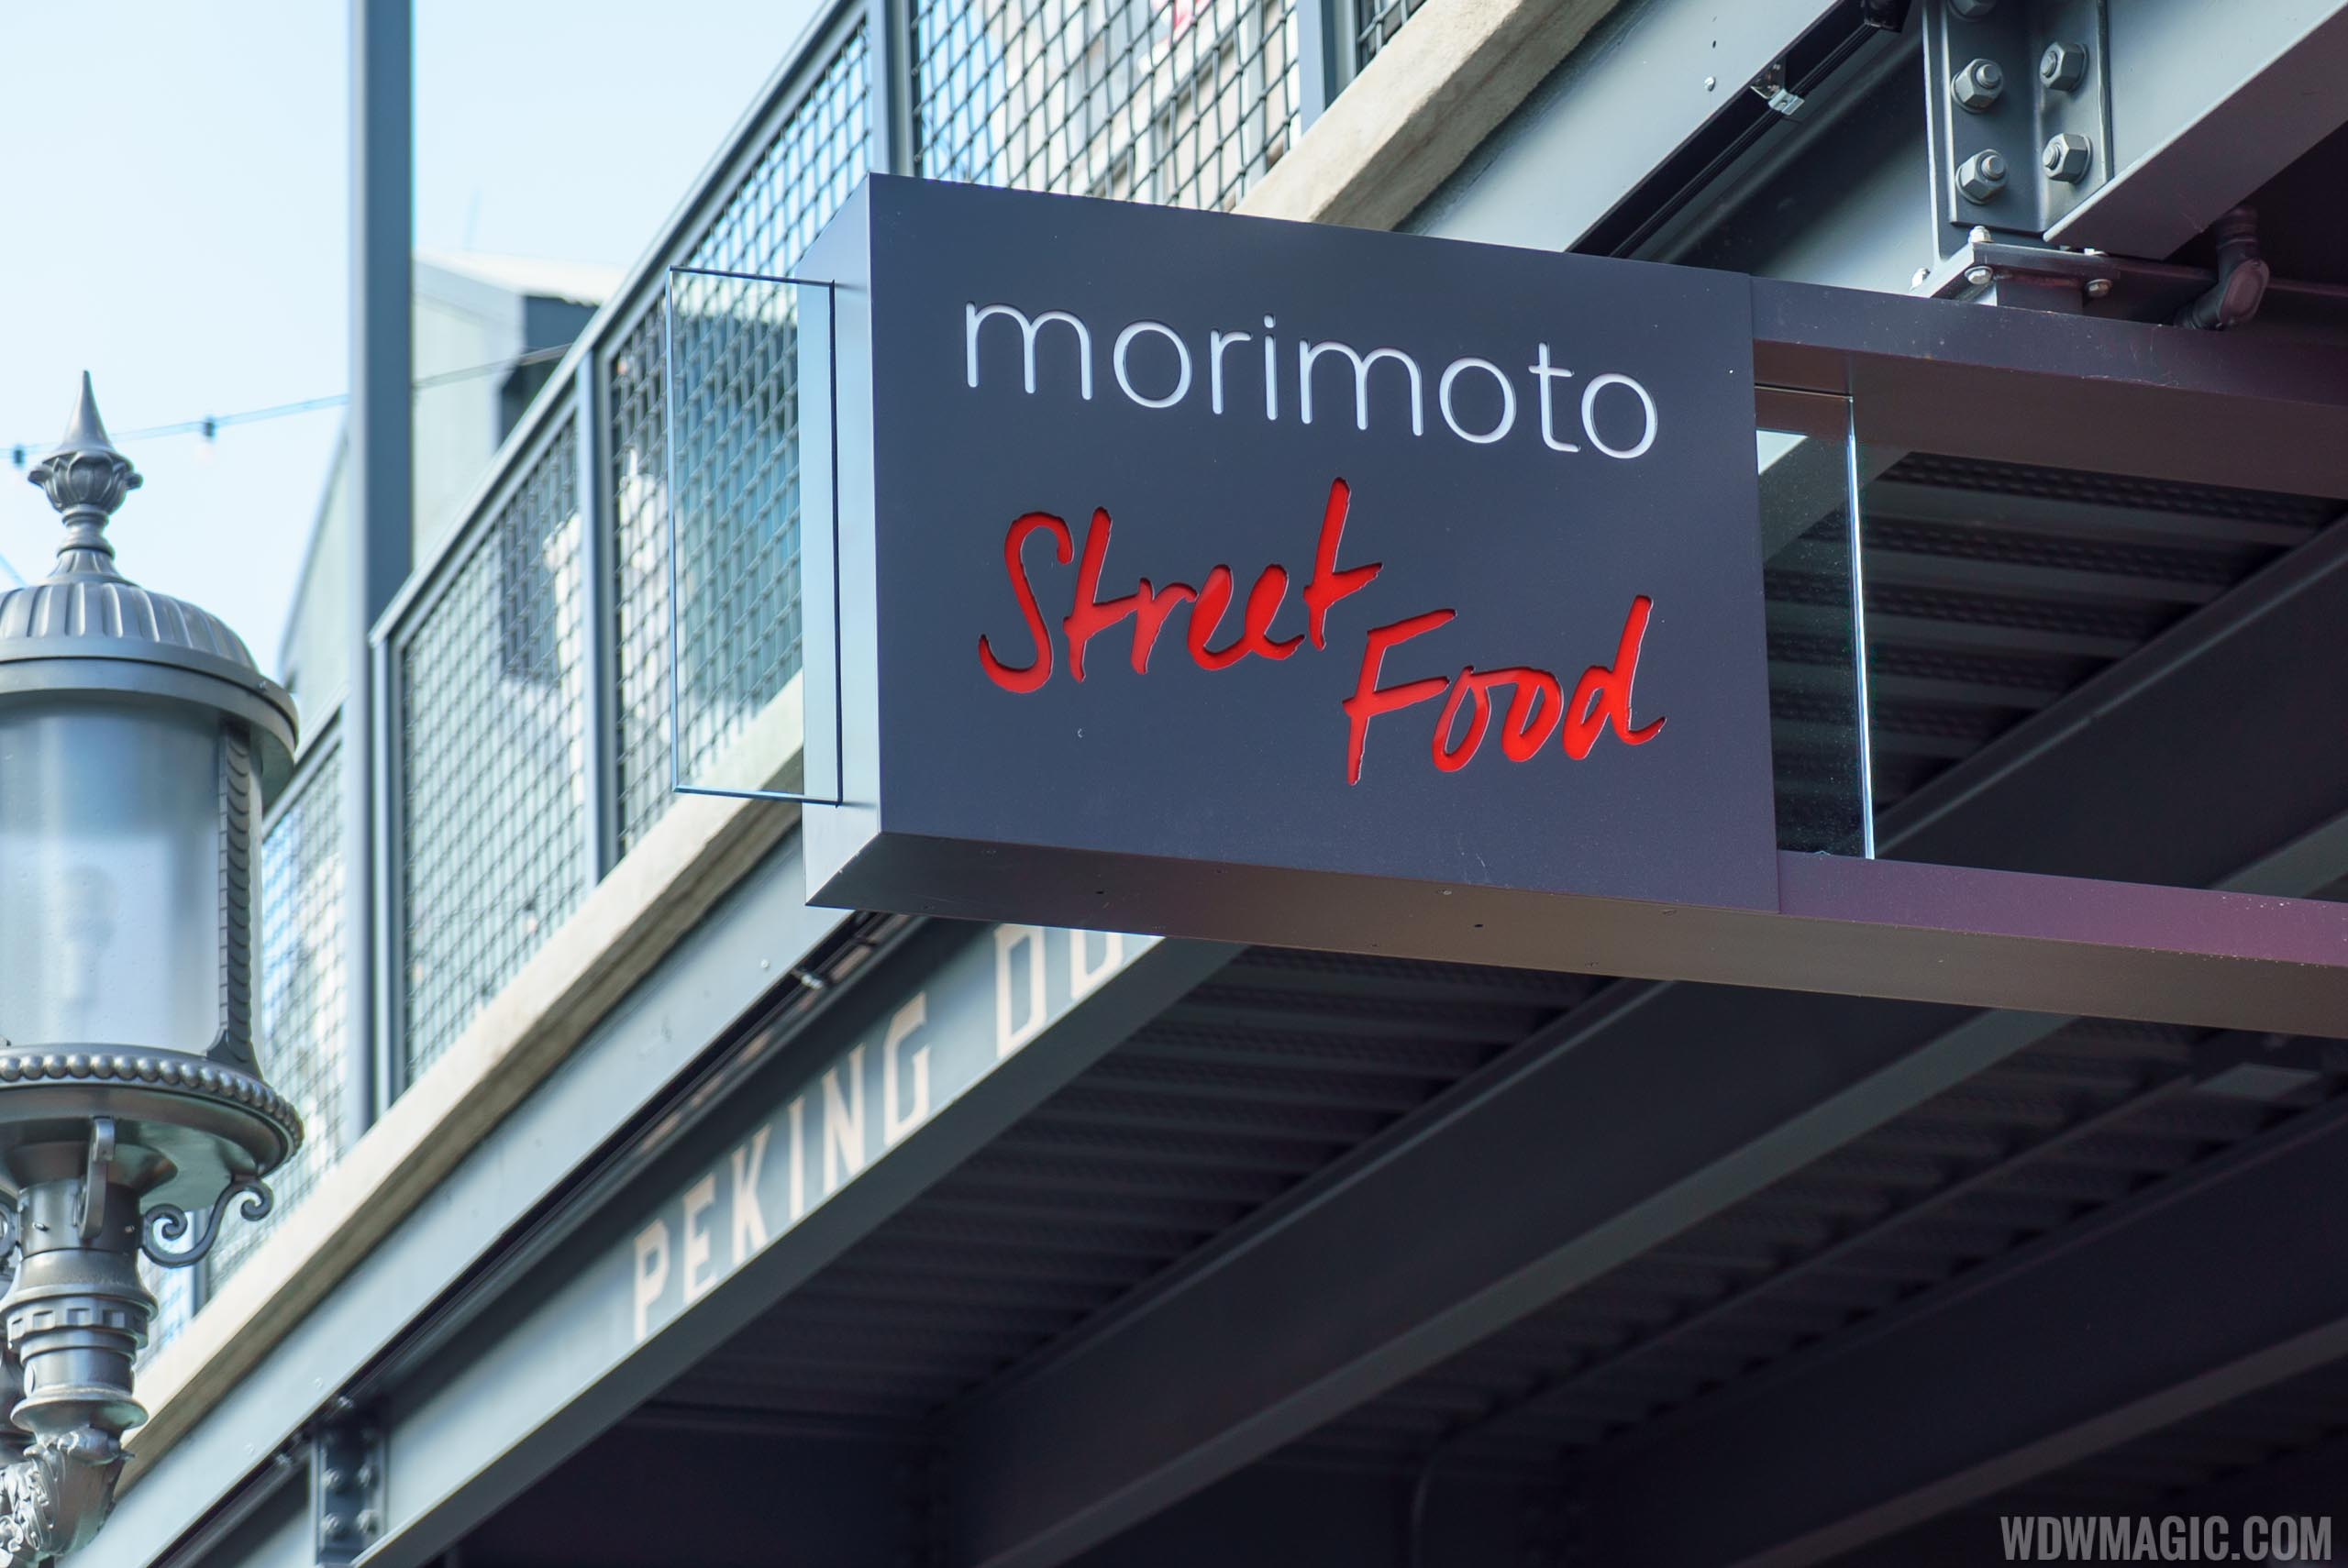 Morimoto Street Food overview